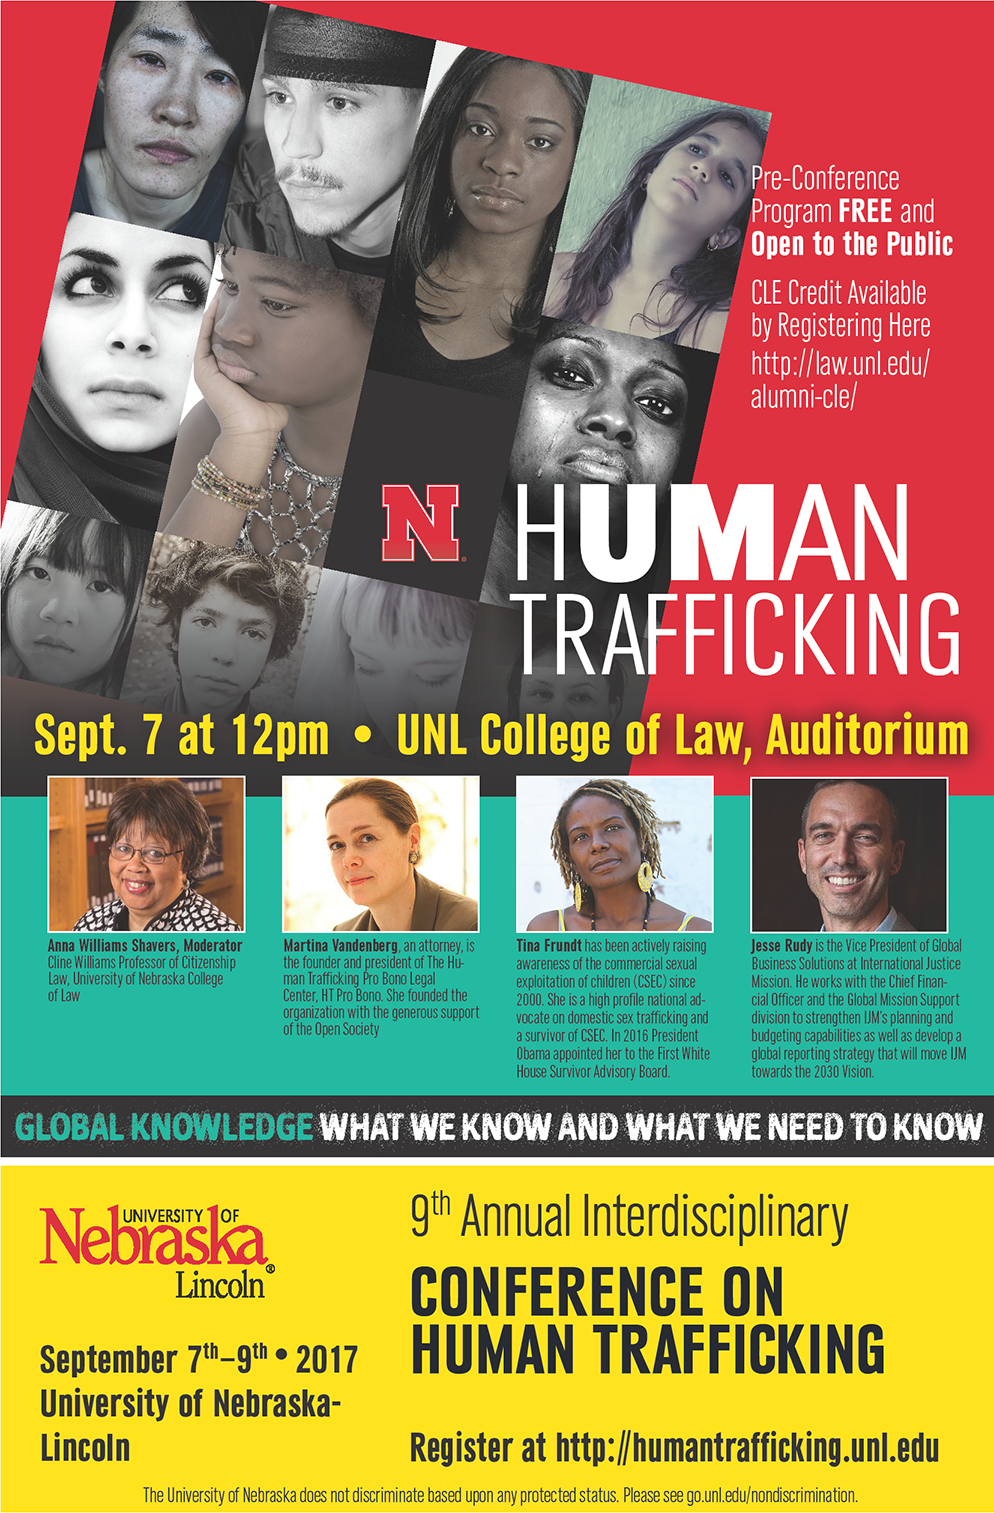 Free Event Sept. 7 at 12pm - UNL College of Law, Auditorium